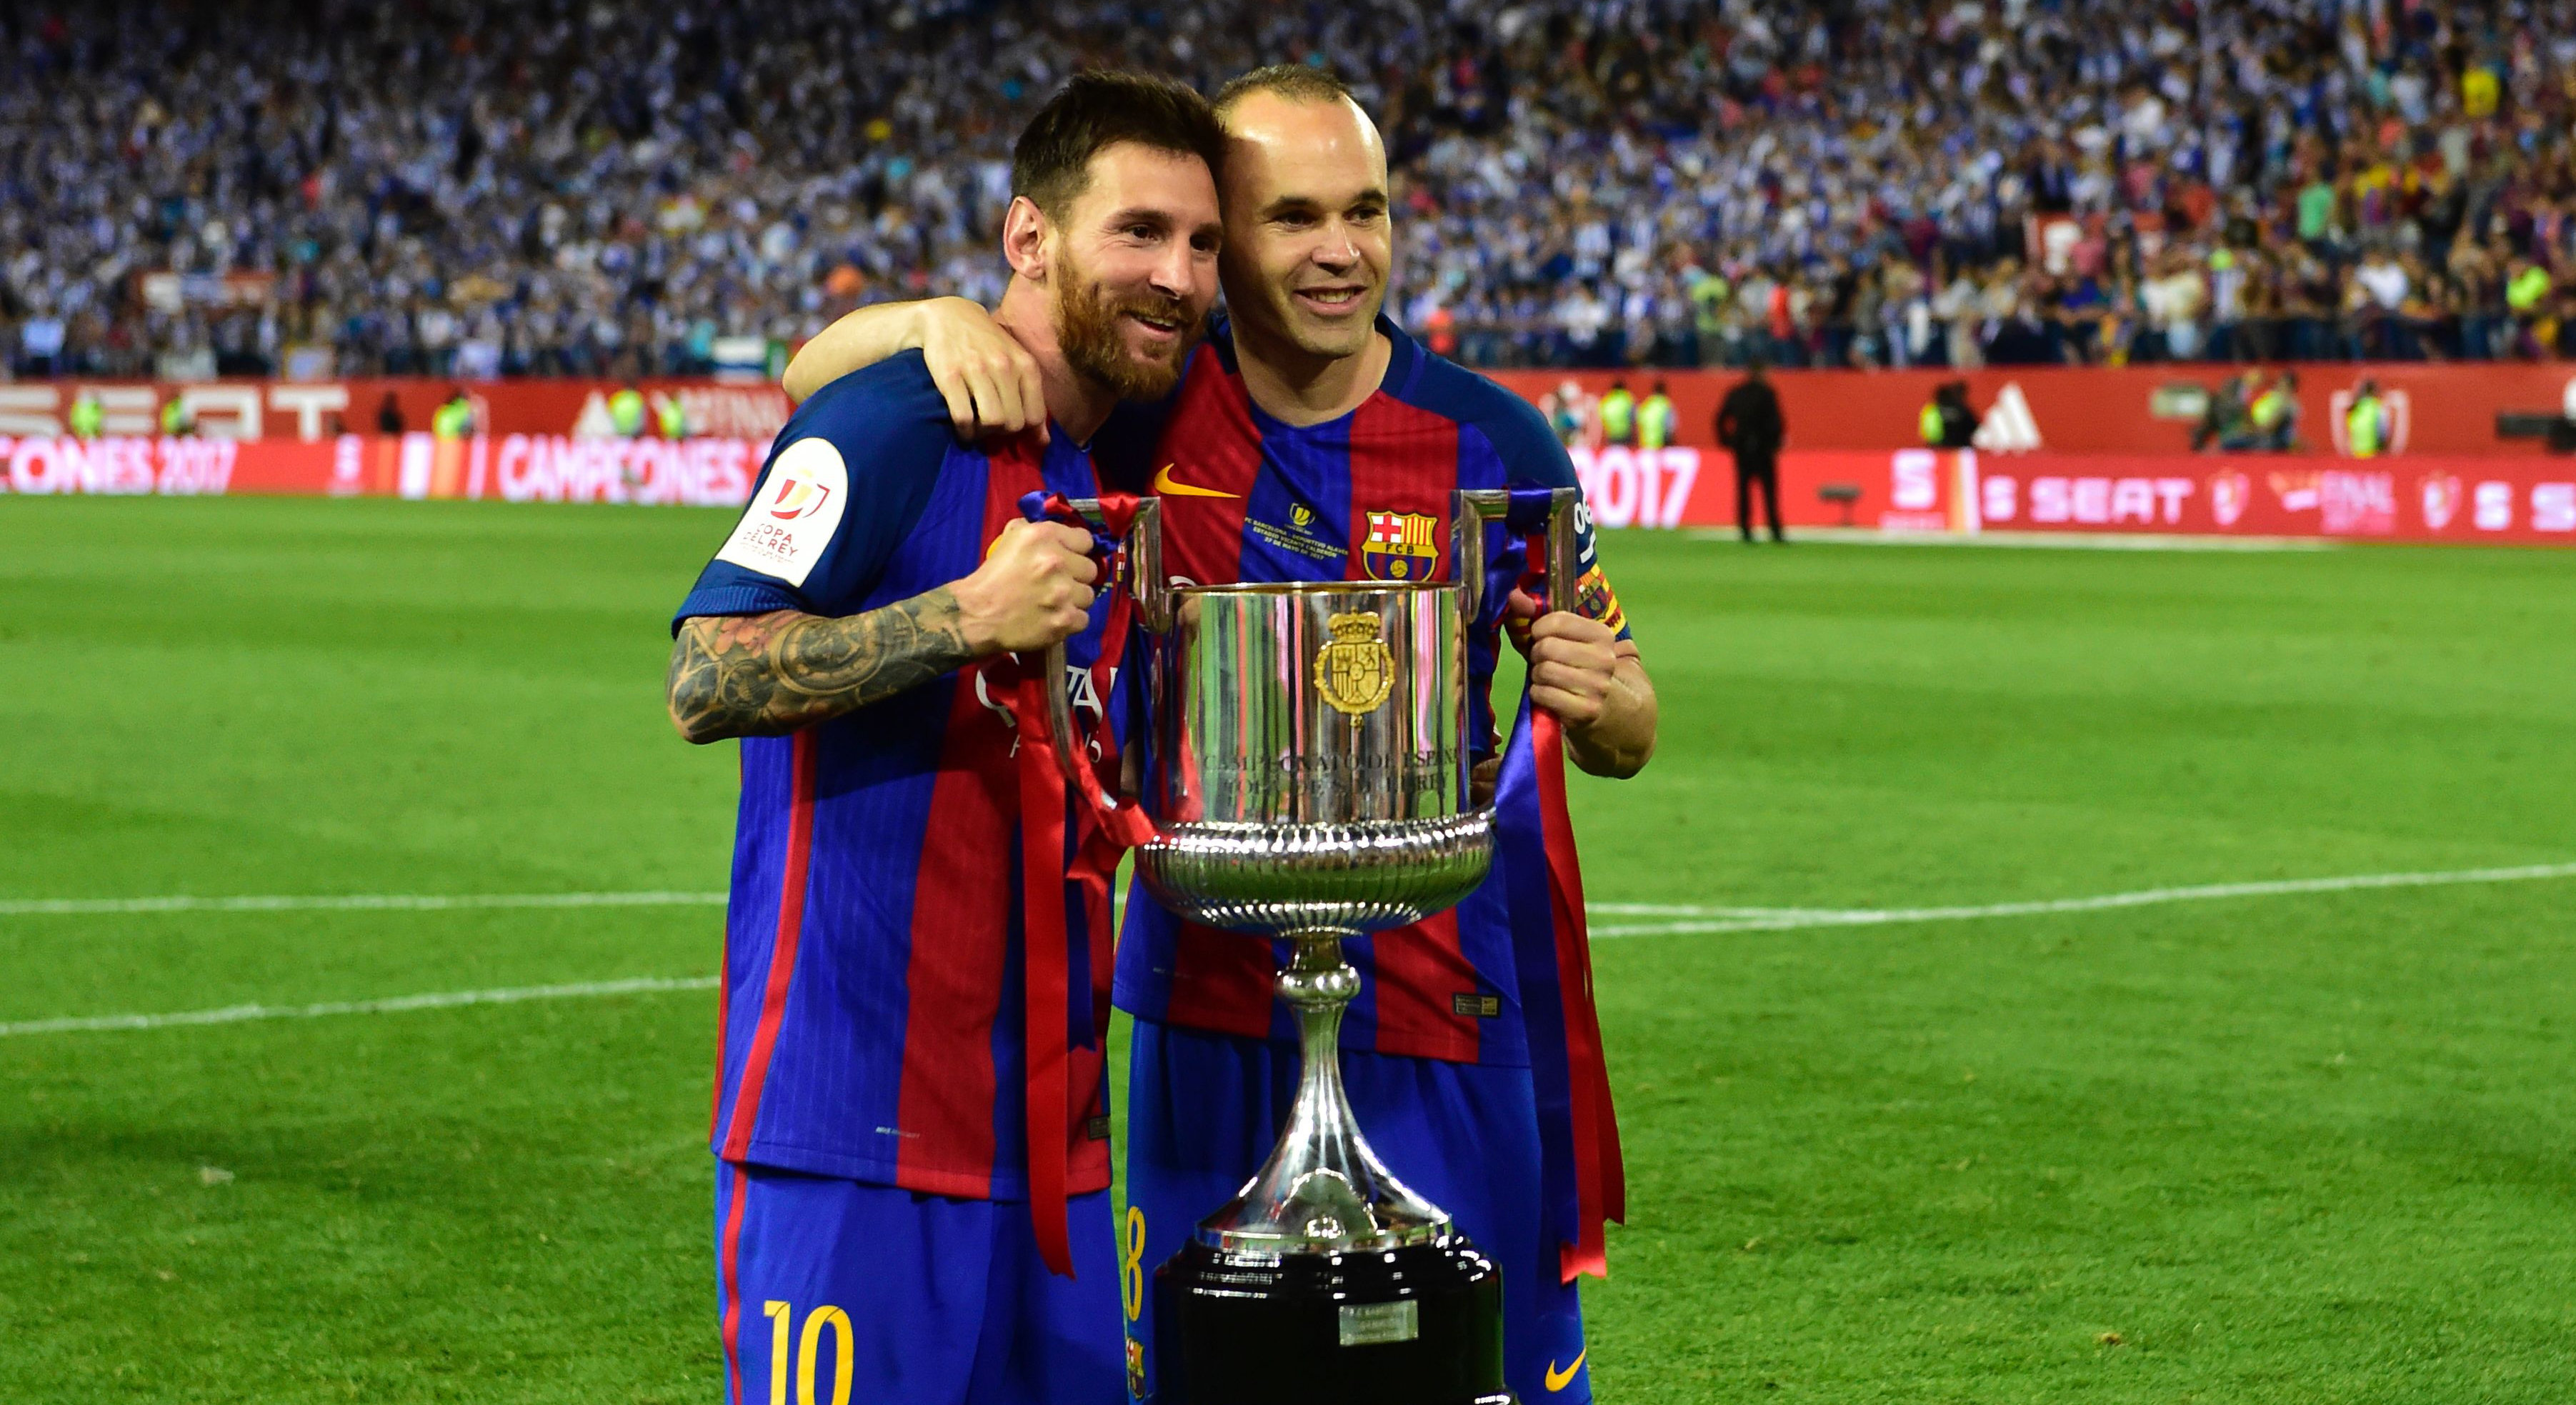 Barcelona's Argentinian forward Lionel Messi (L) and Barcelona's midfielder Andres Iniesta hold up the trophy after the team won the Spanish Copa del Rey (King's Cup) final football match FC Barcelona vs Deportivo Alaves at the Vicente Calderon stadi